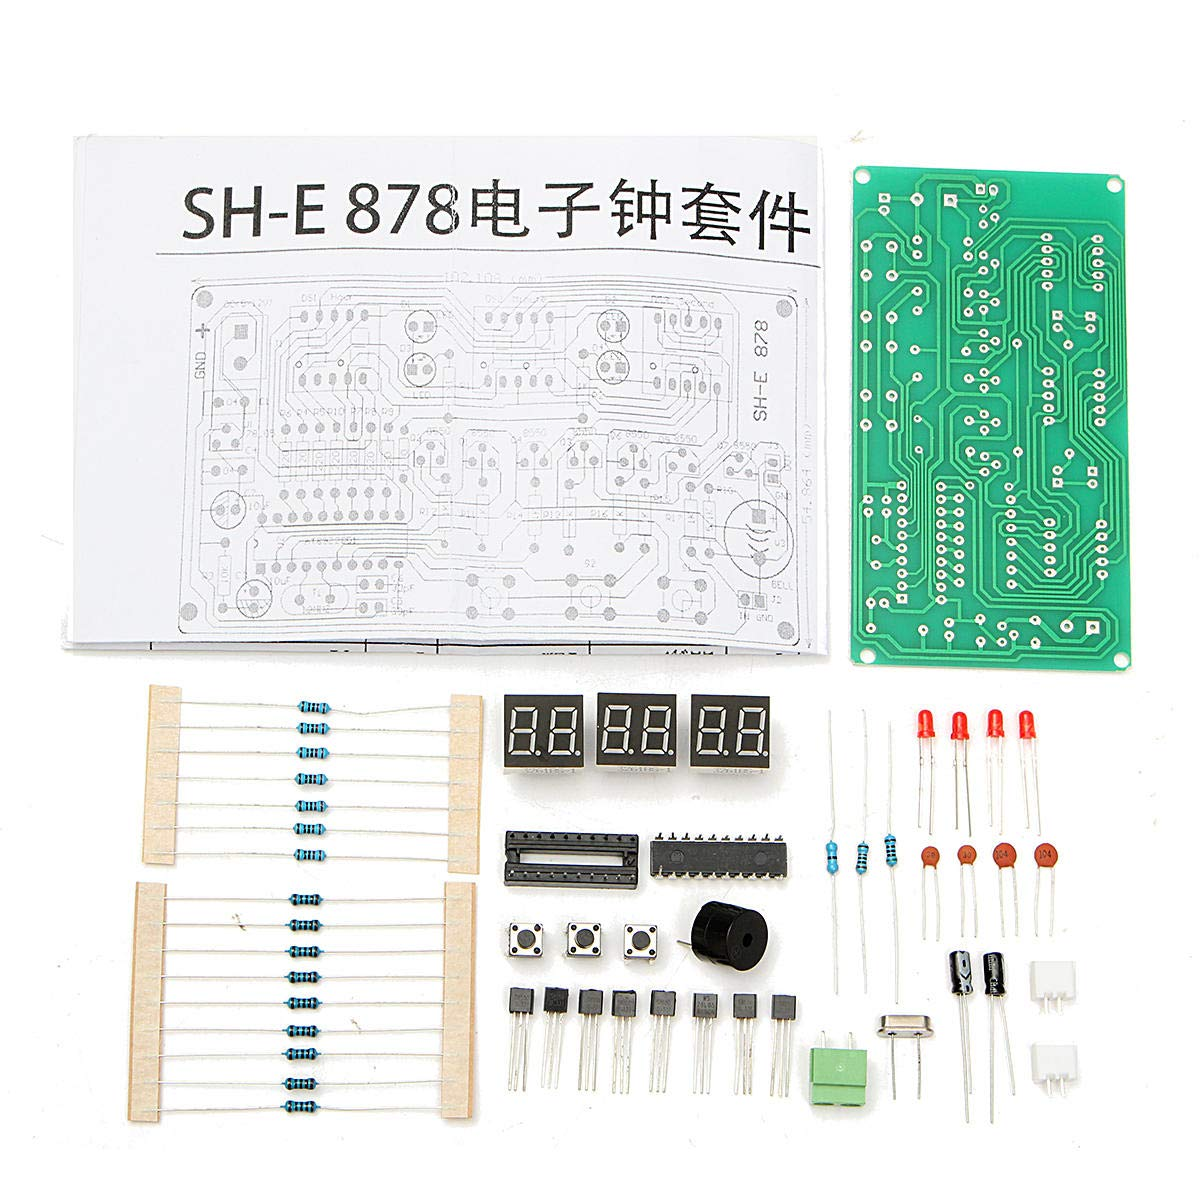 5V-12V AT89C2051 Multifunction Six Digital LED Electronic Clock Kit - Arduino Compatible SCM & DIY Kits Arduino Compatible Kits & DIY Kits - 1 x LED ...